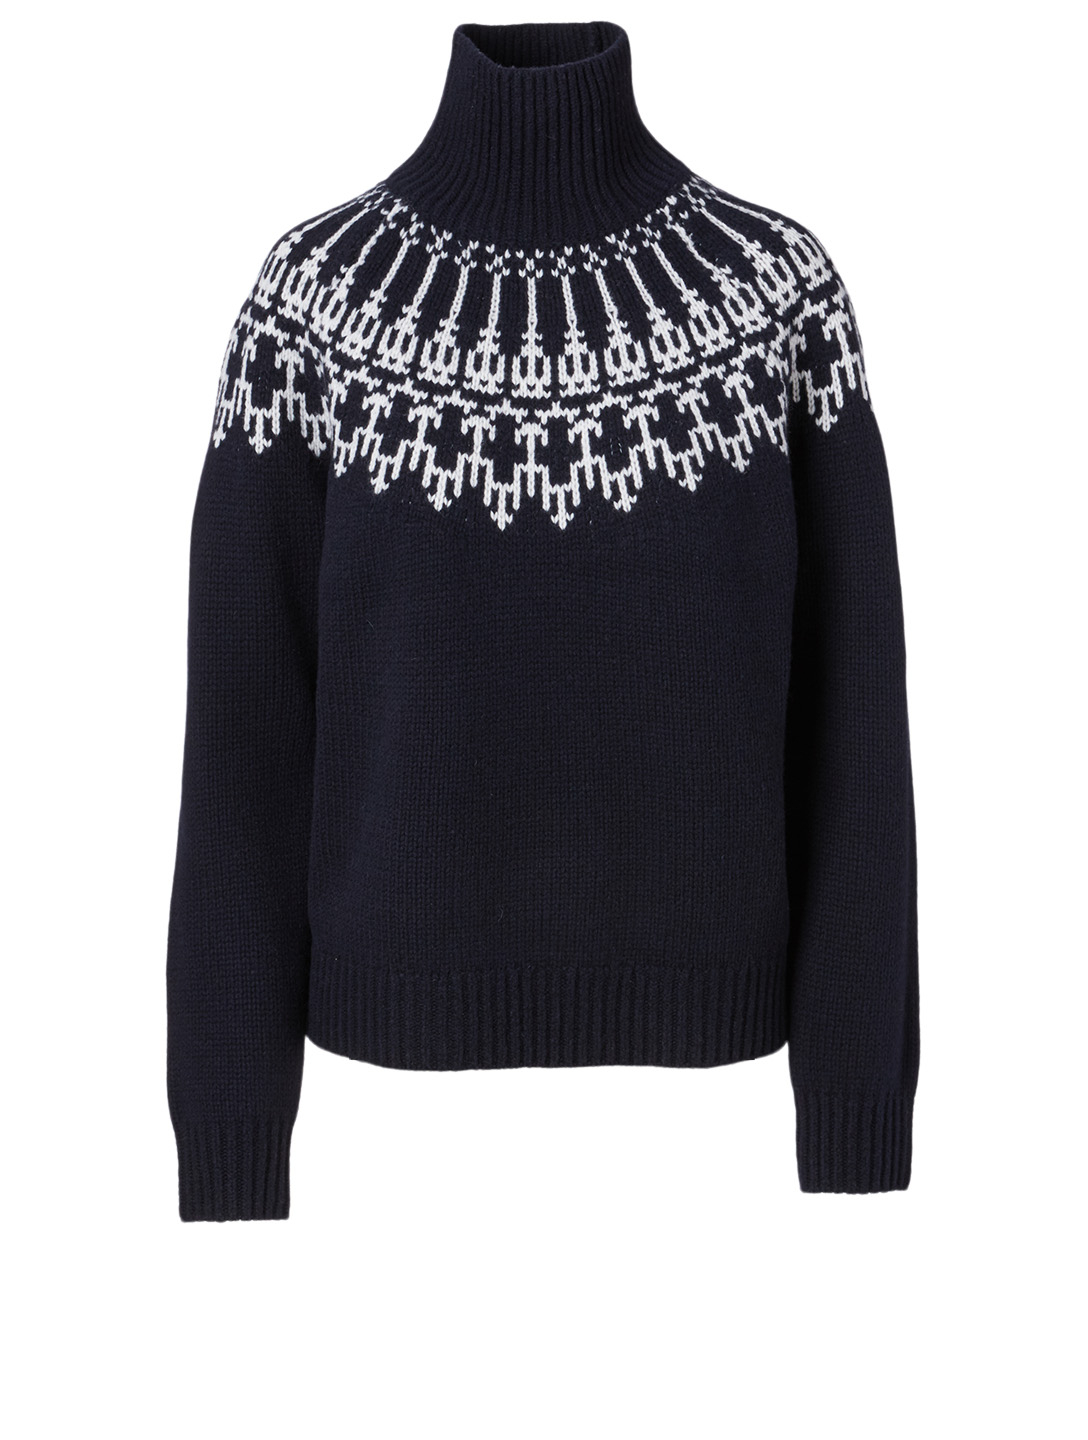 TORY SPORT Merino Fair Isle Sweater Women's Blue